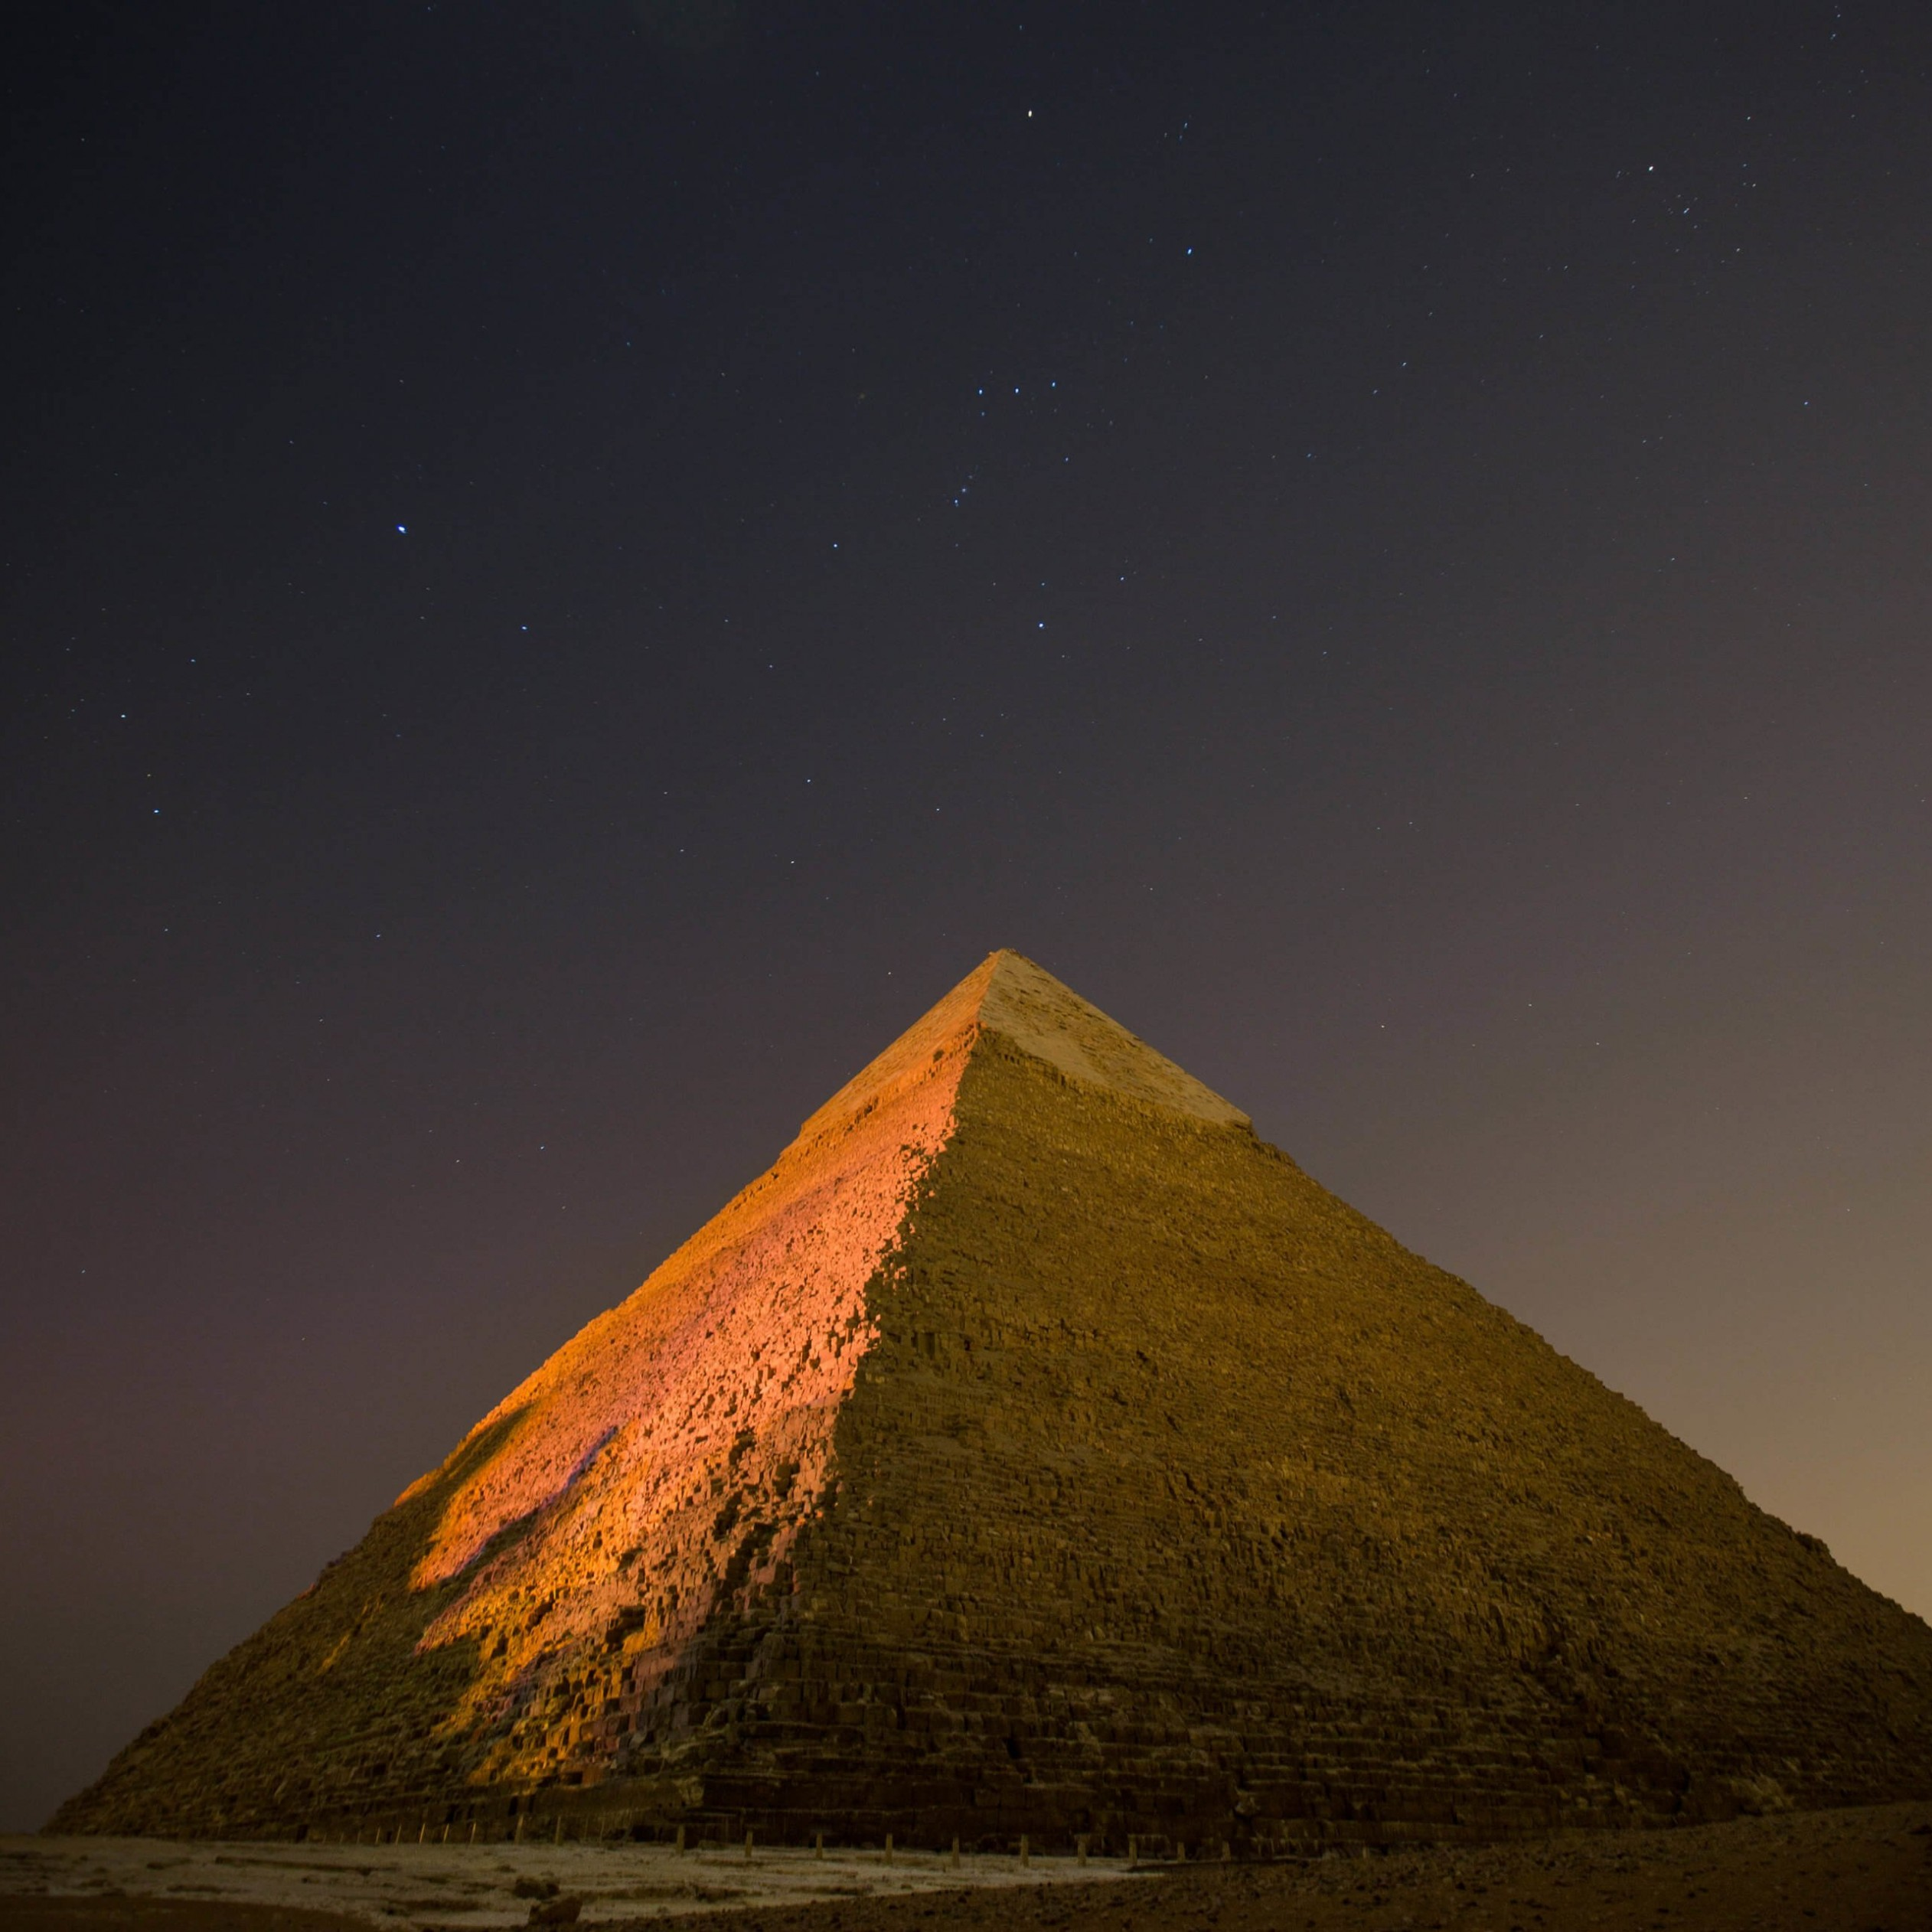 Pyramid by Night Wallpaper for Apple iPad 4